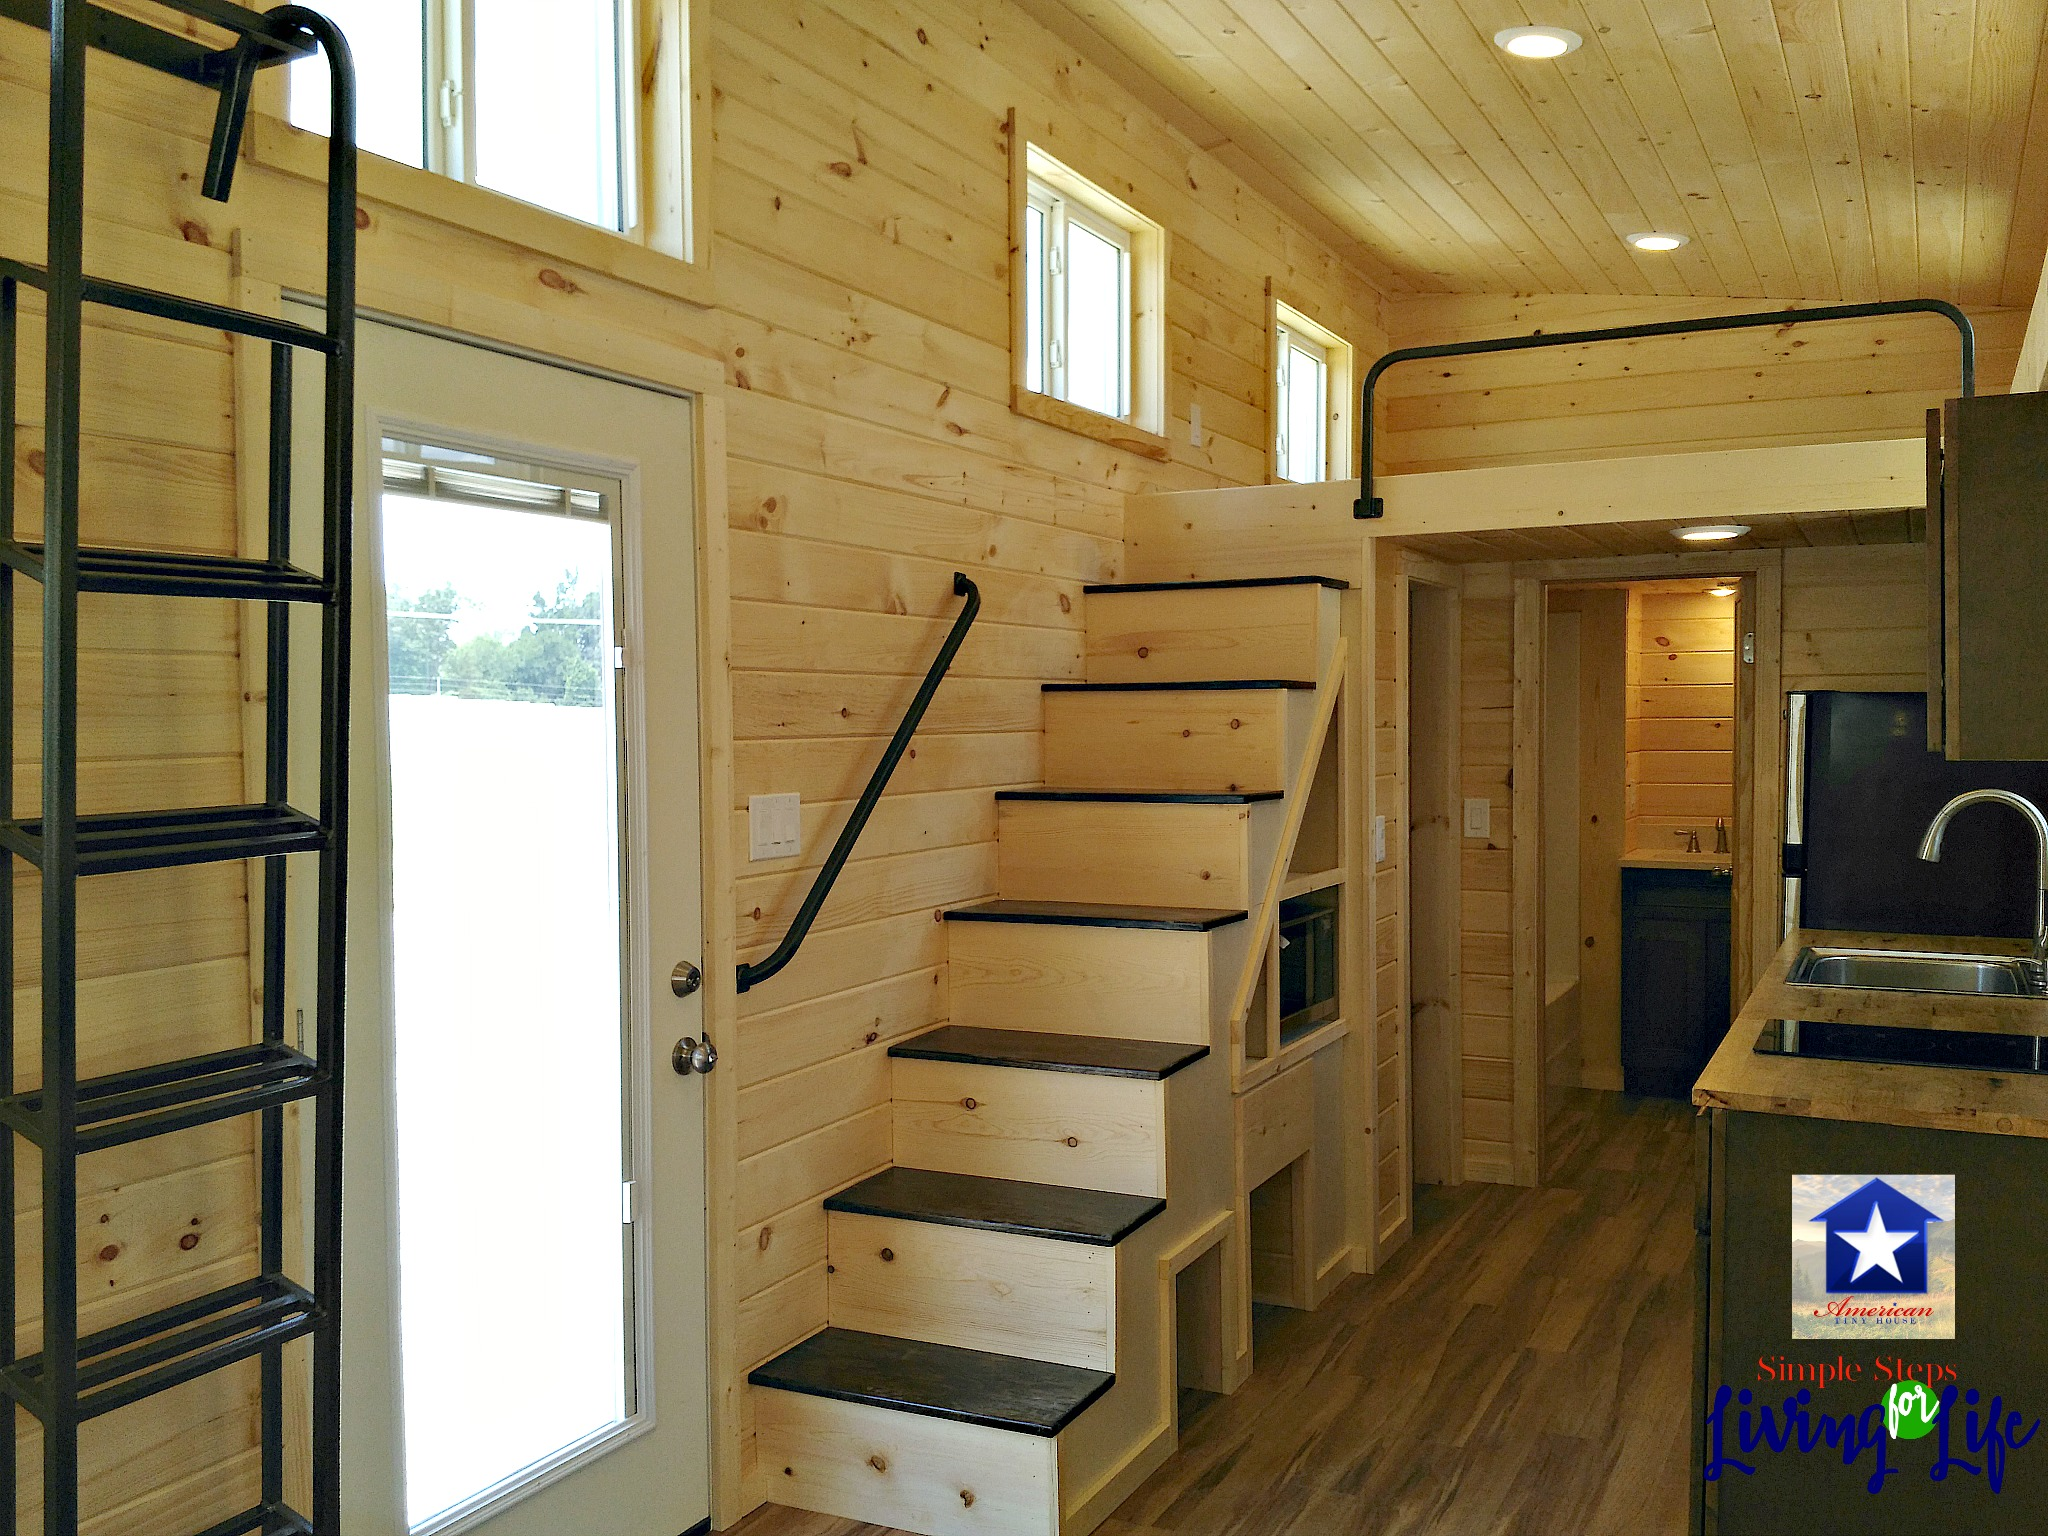 Staggering A View Kitchen Area A Tiny As Seen On Tiny House Stepsforlivinglife Tiny House Hunters Episodes Youtube Tiny House Hunters Episodes A Sized Refrigerator curbed Tiny House Hunters Full Episodes